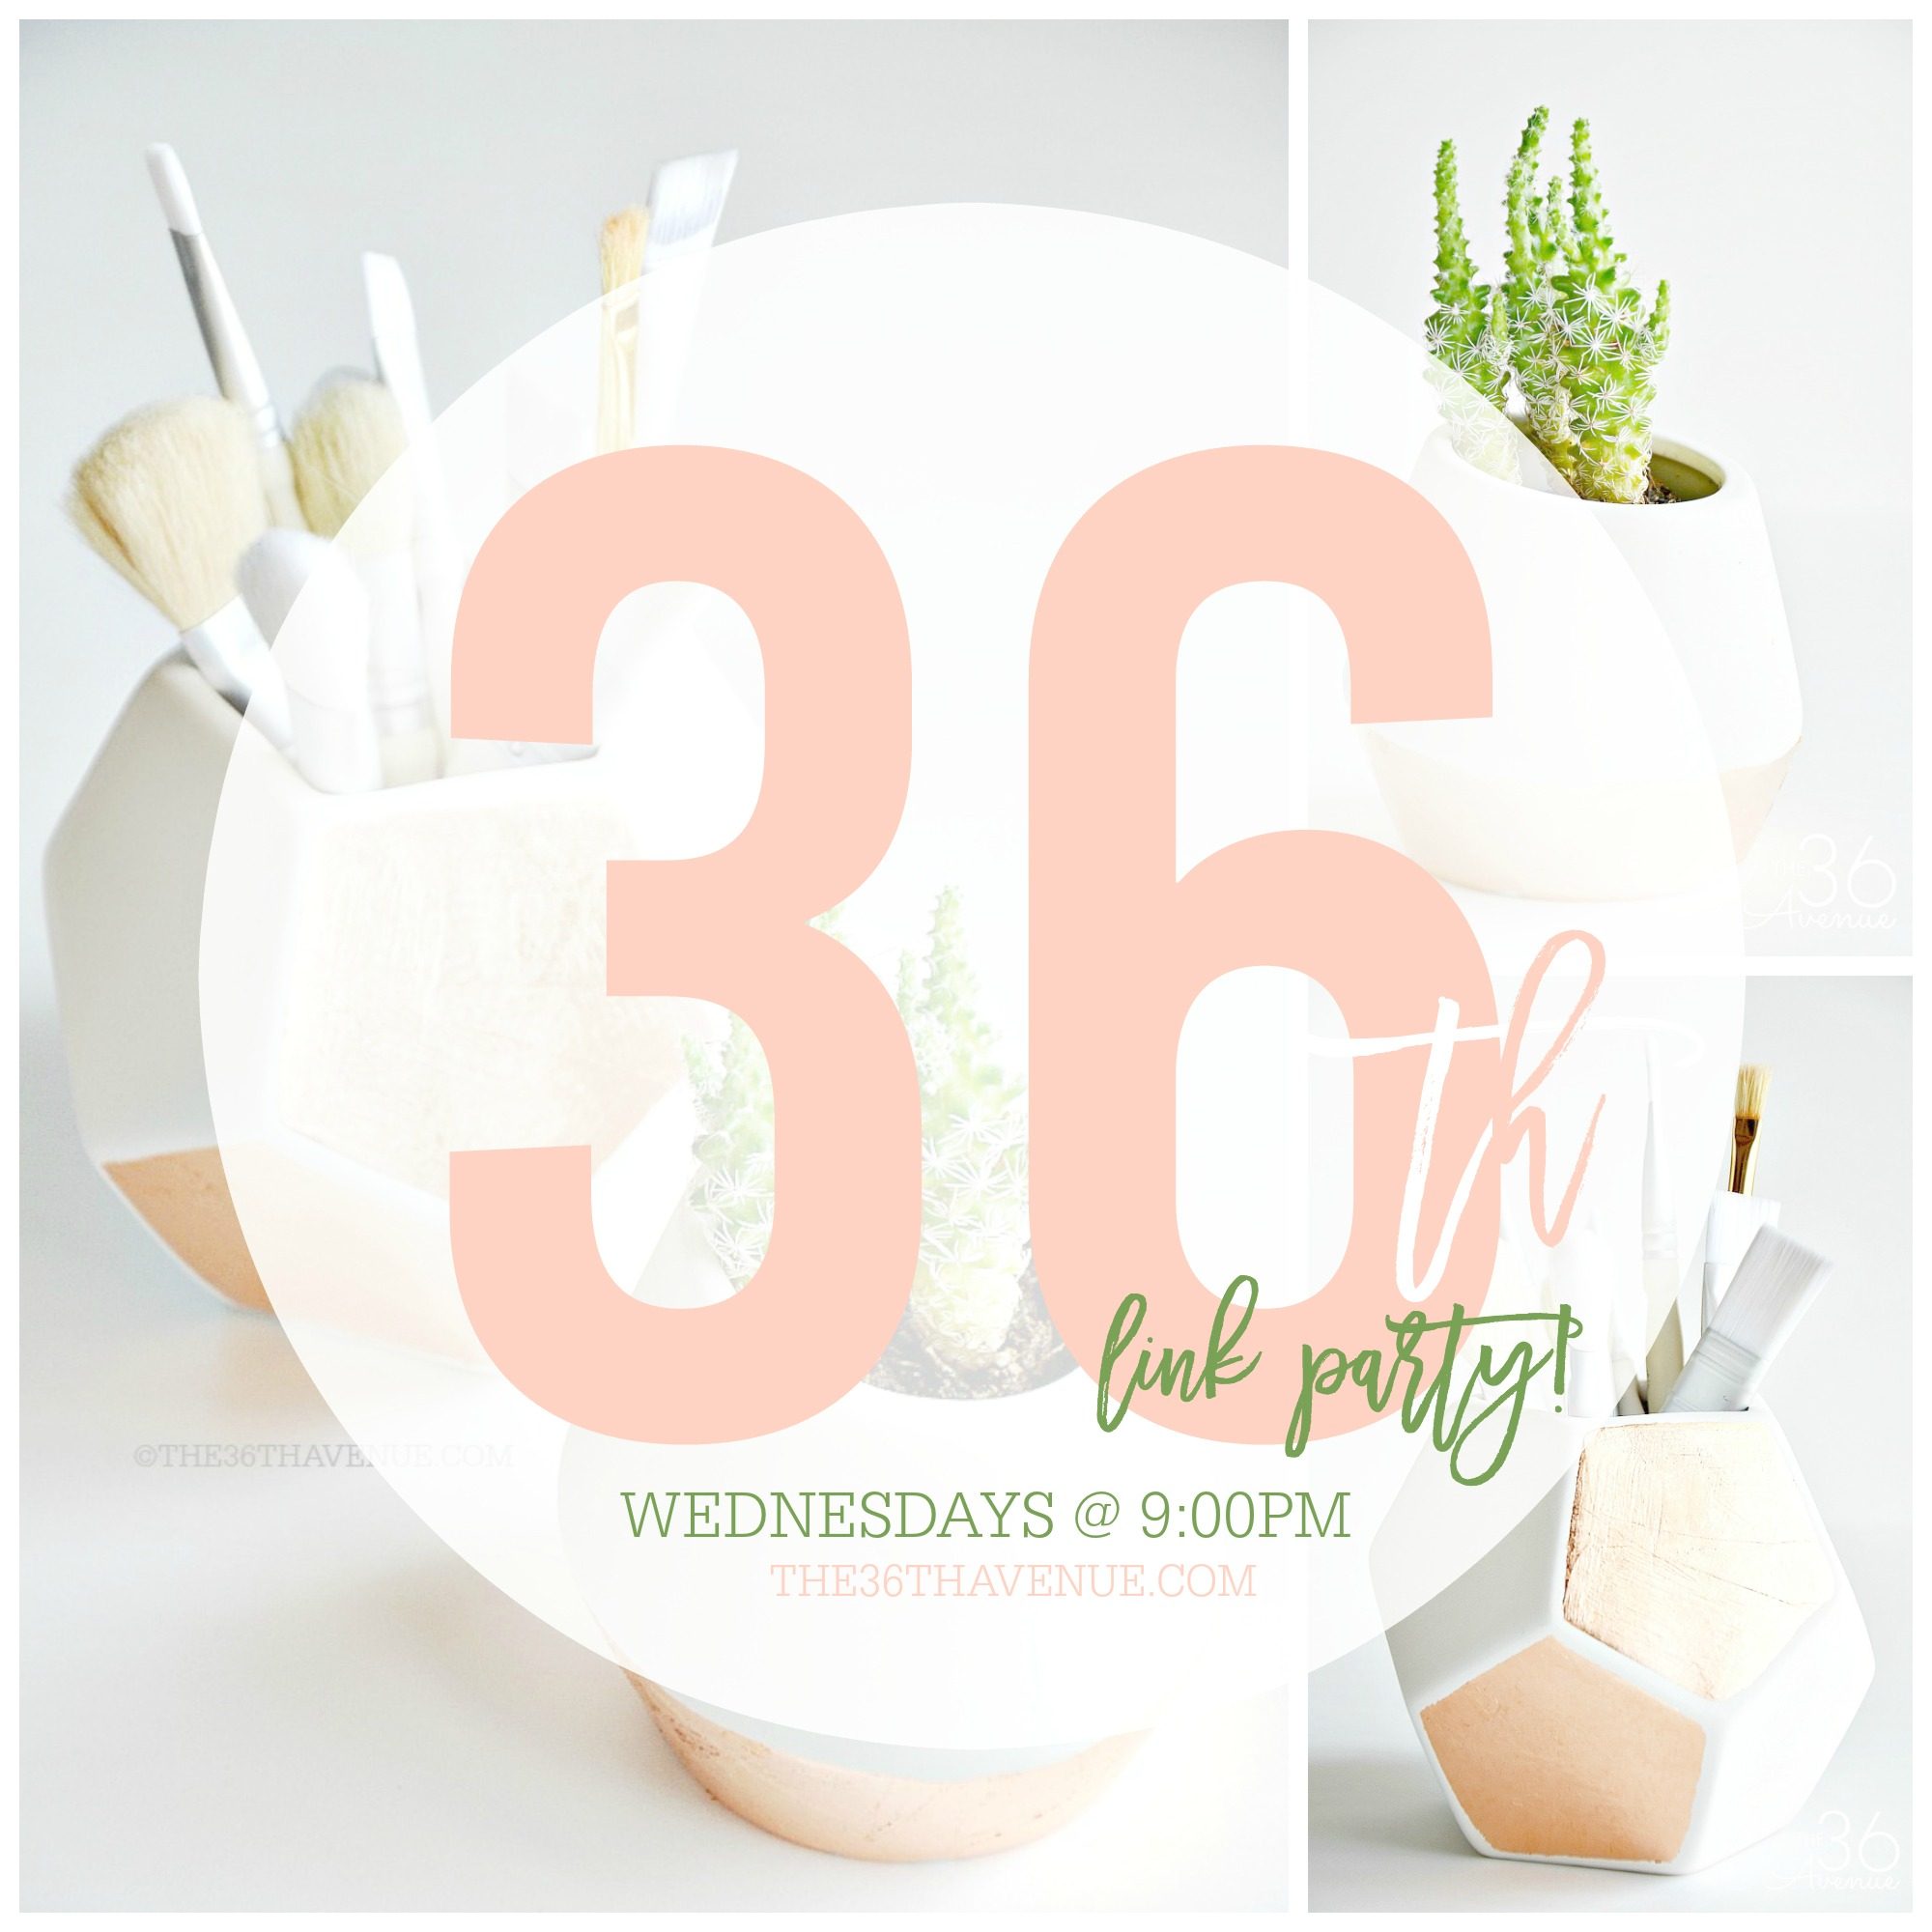 Link Up your home decor ideas, recipes, crafts, DIY Projects, and more every Wednesday, starting at 9:00 pm